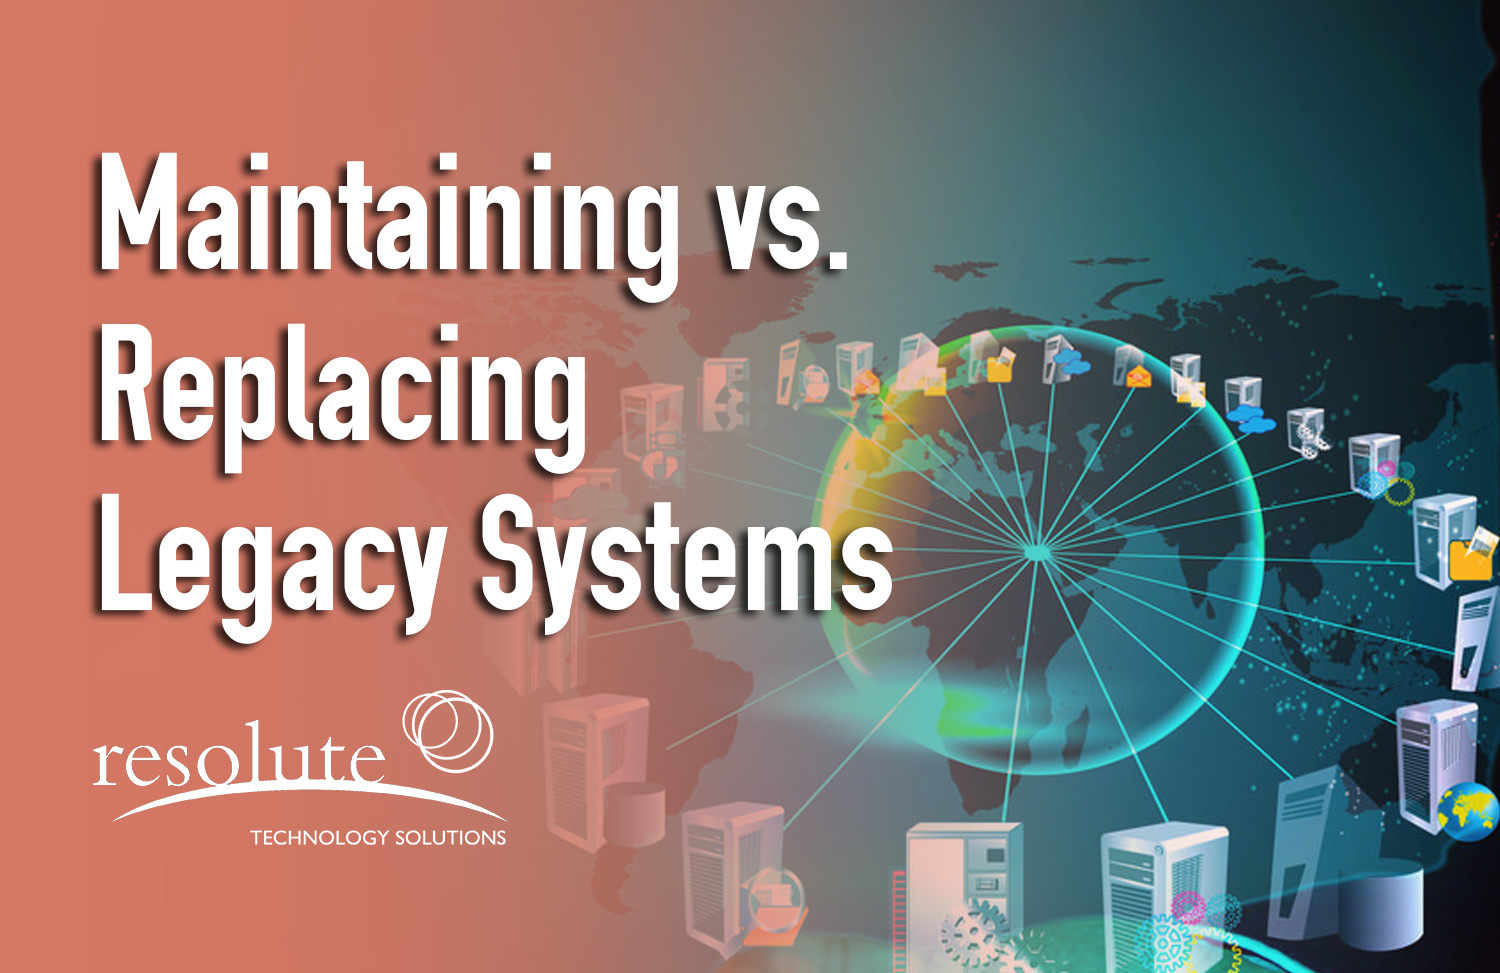 Maintaining vs Replacing Legacy Systems